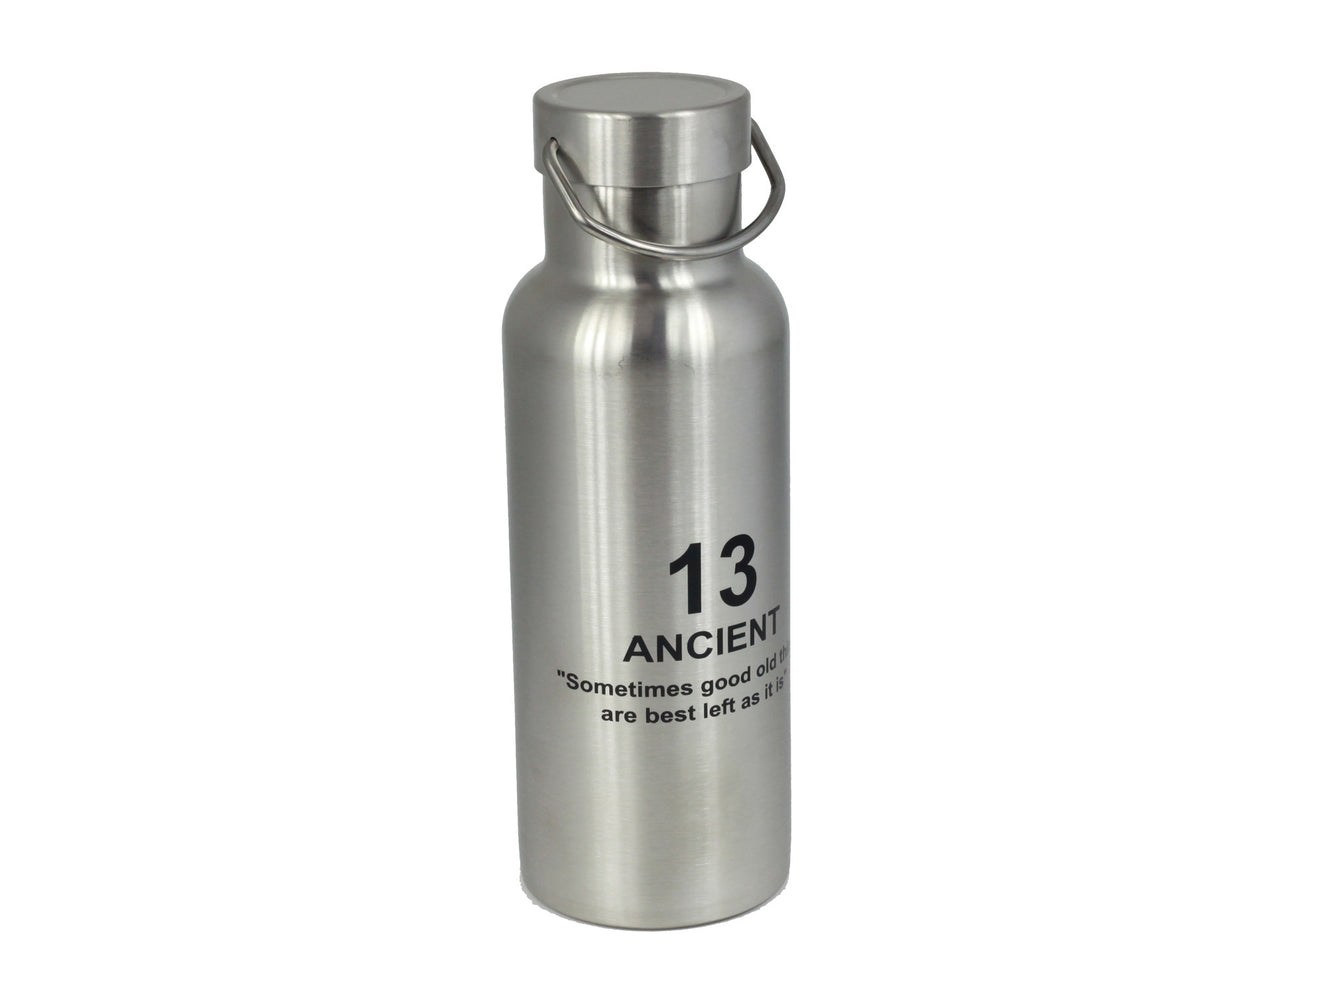 Ancient Stainless Bottle | Silver by Showa - Bento&con the Bento Boxes specialist from Kyoto